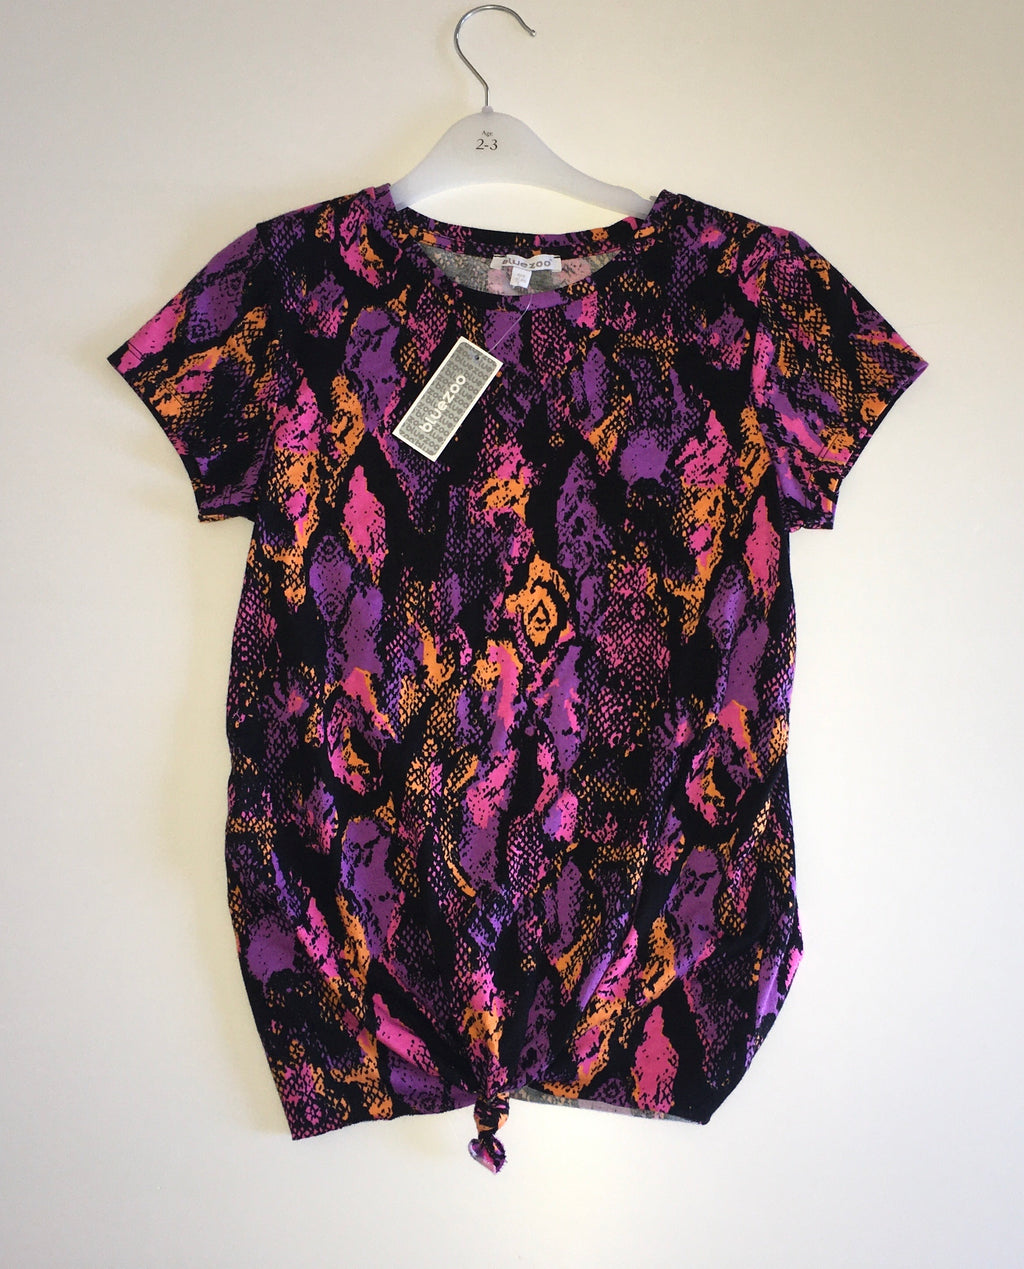 Bluezoo Top, BNWT, Girls 9-10/ 10 Years